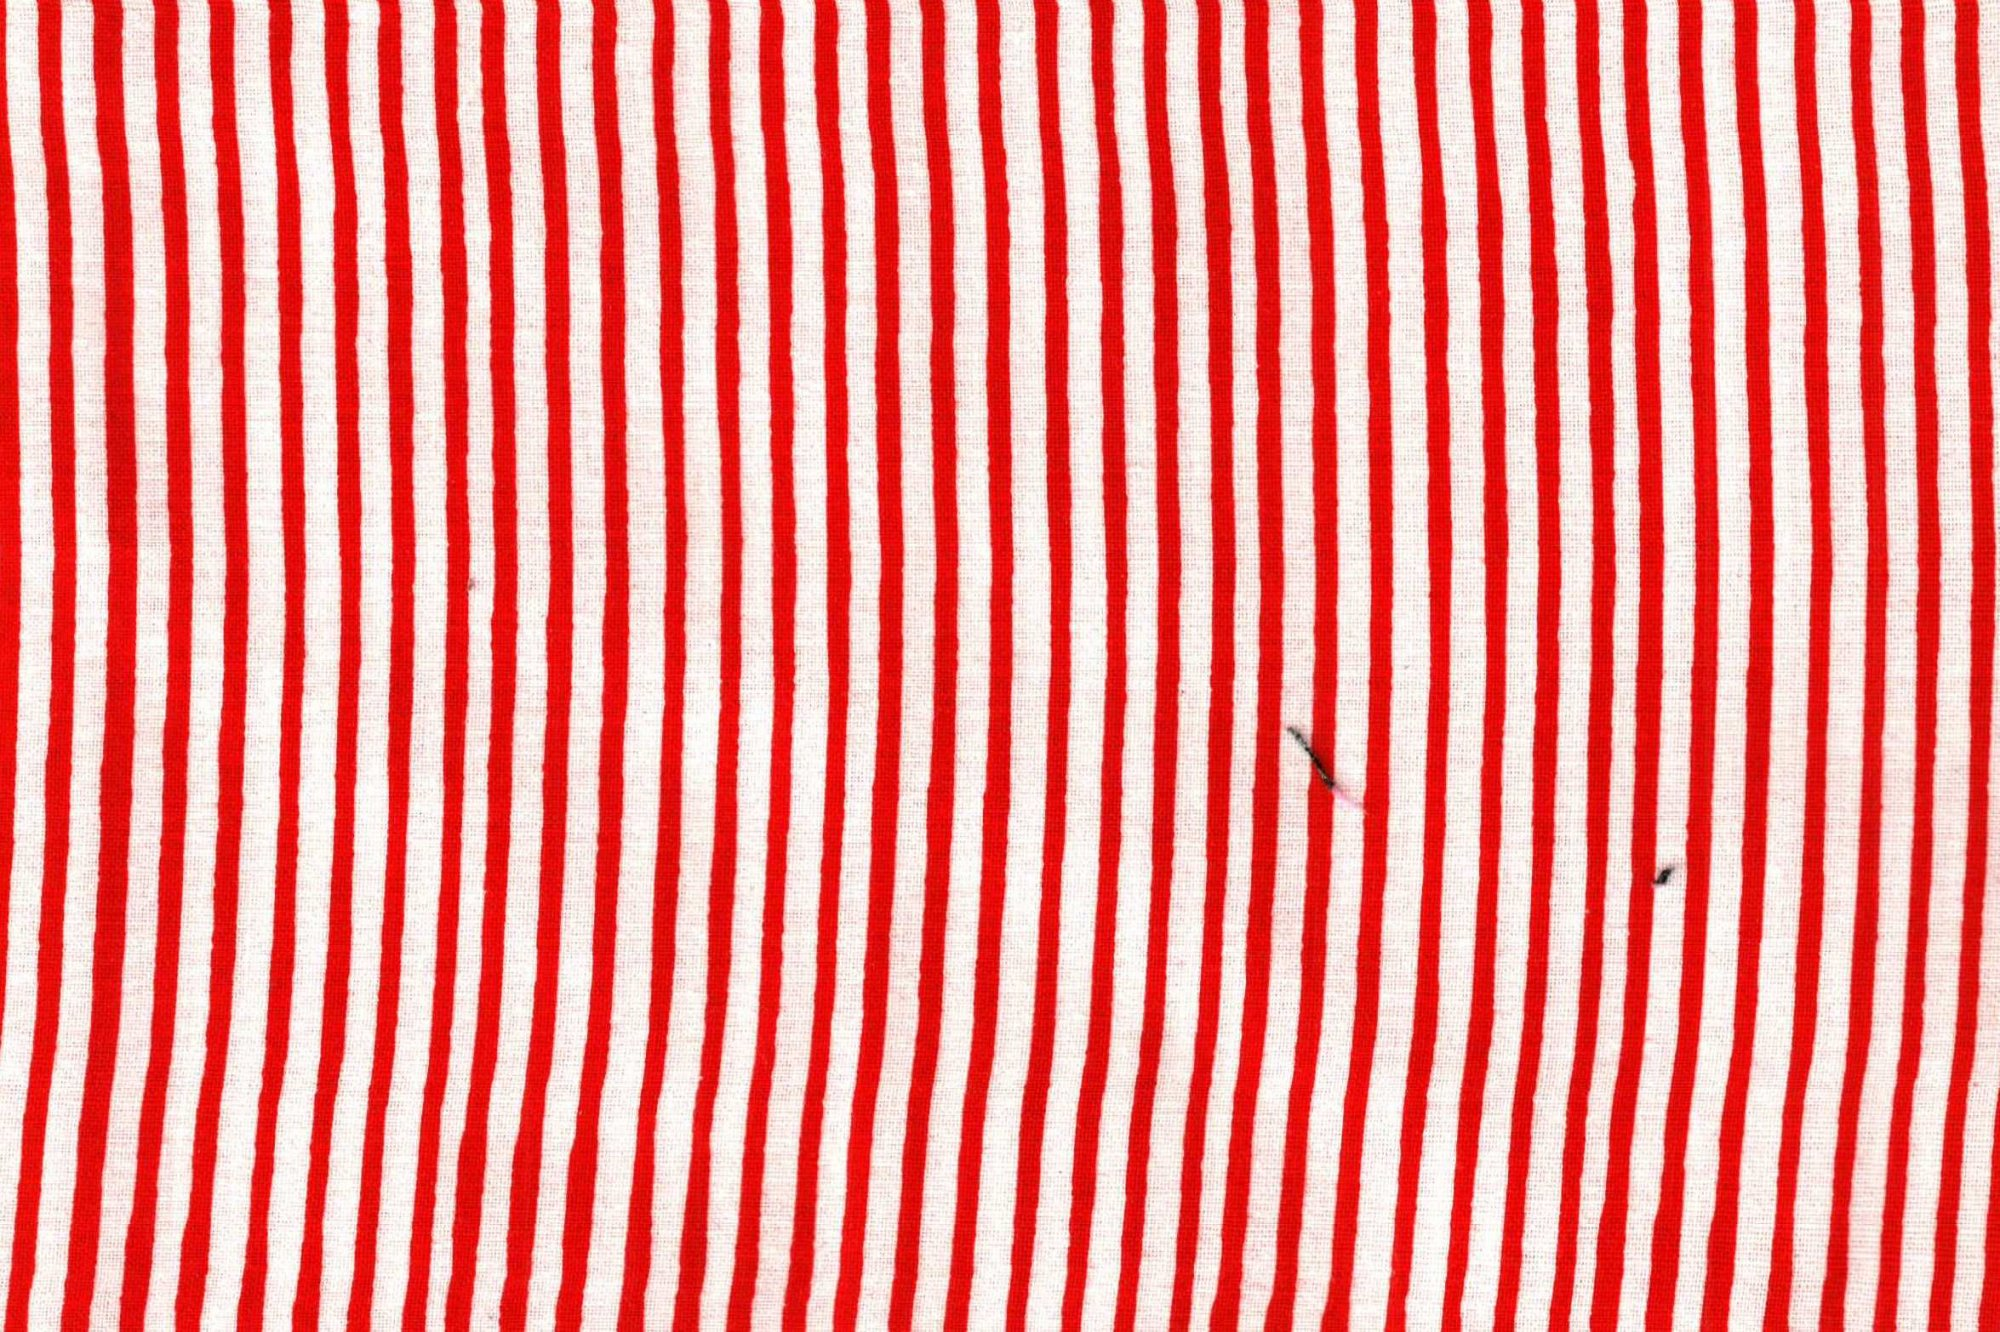 LORALIE DESIGNS 691-836-B LAZY STRIPE RED